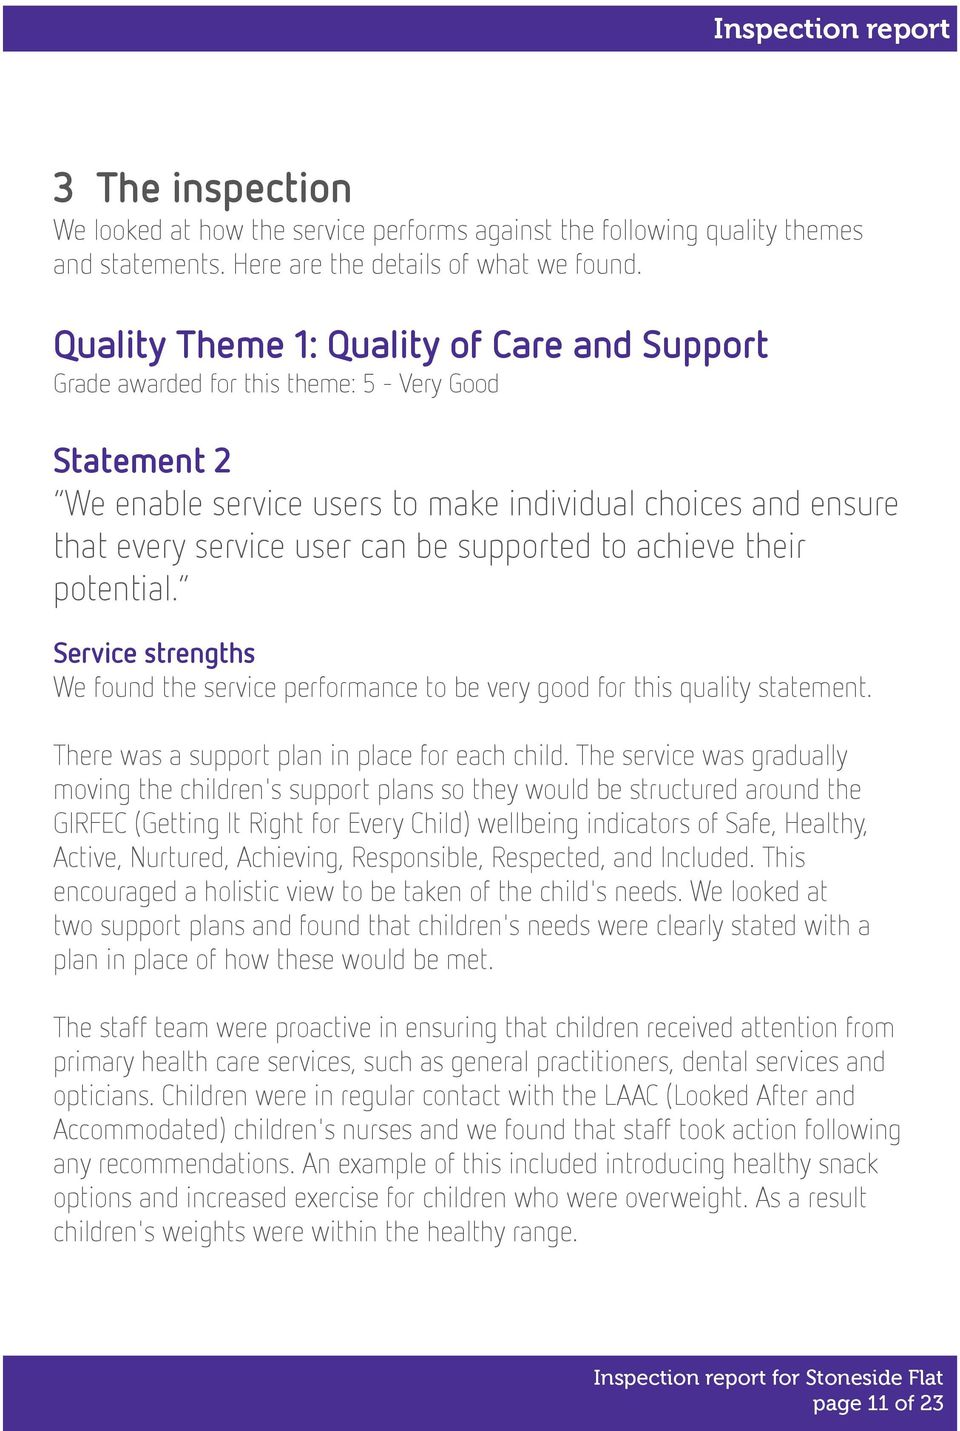 supported to achieve their potential. Service strengths We found the service performance to be very good for this quality statement. There was a support plan in place for each child.